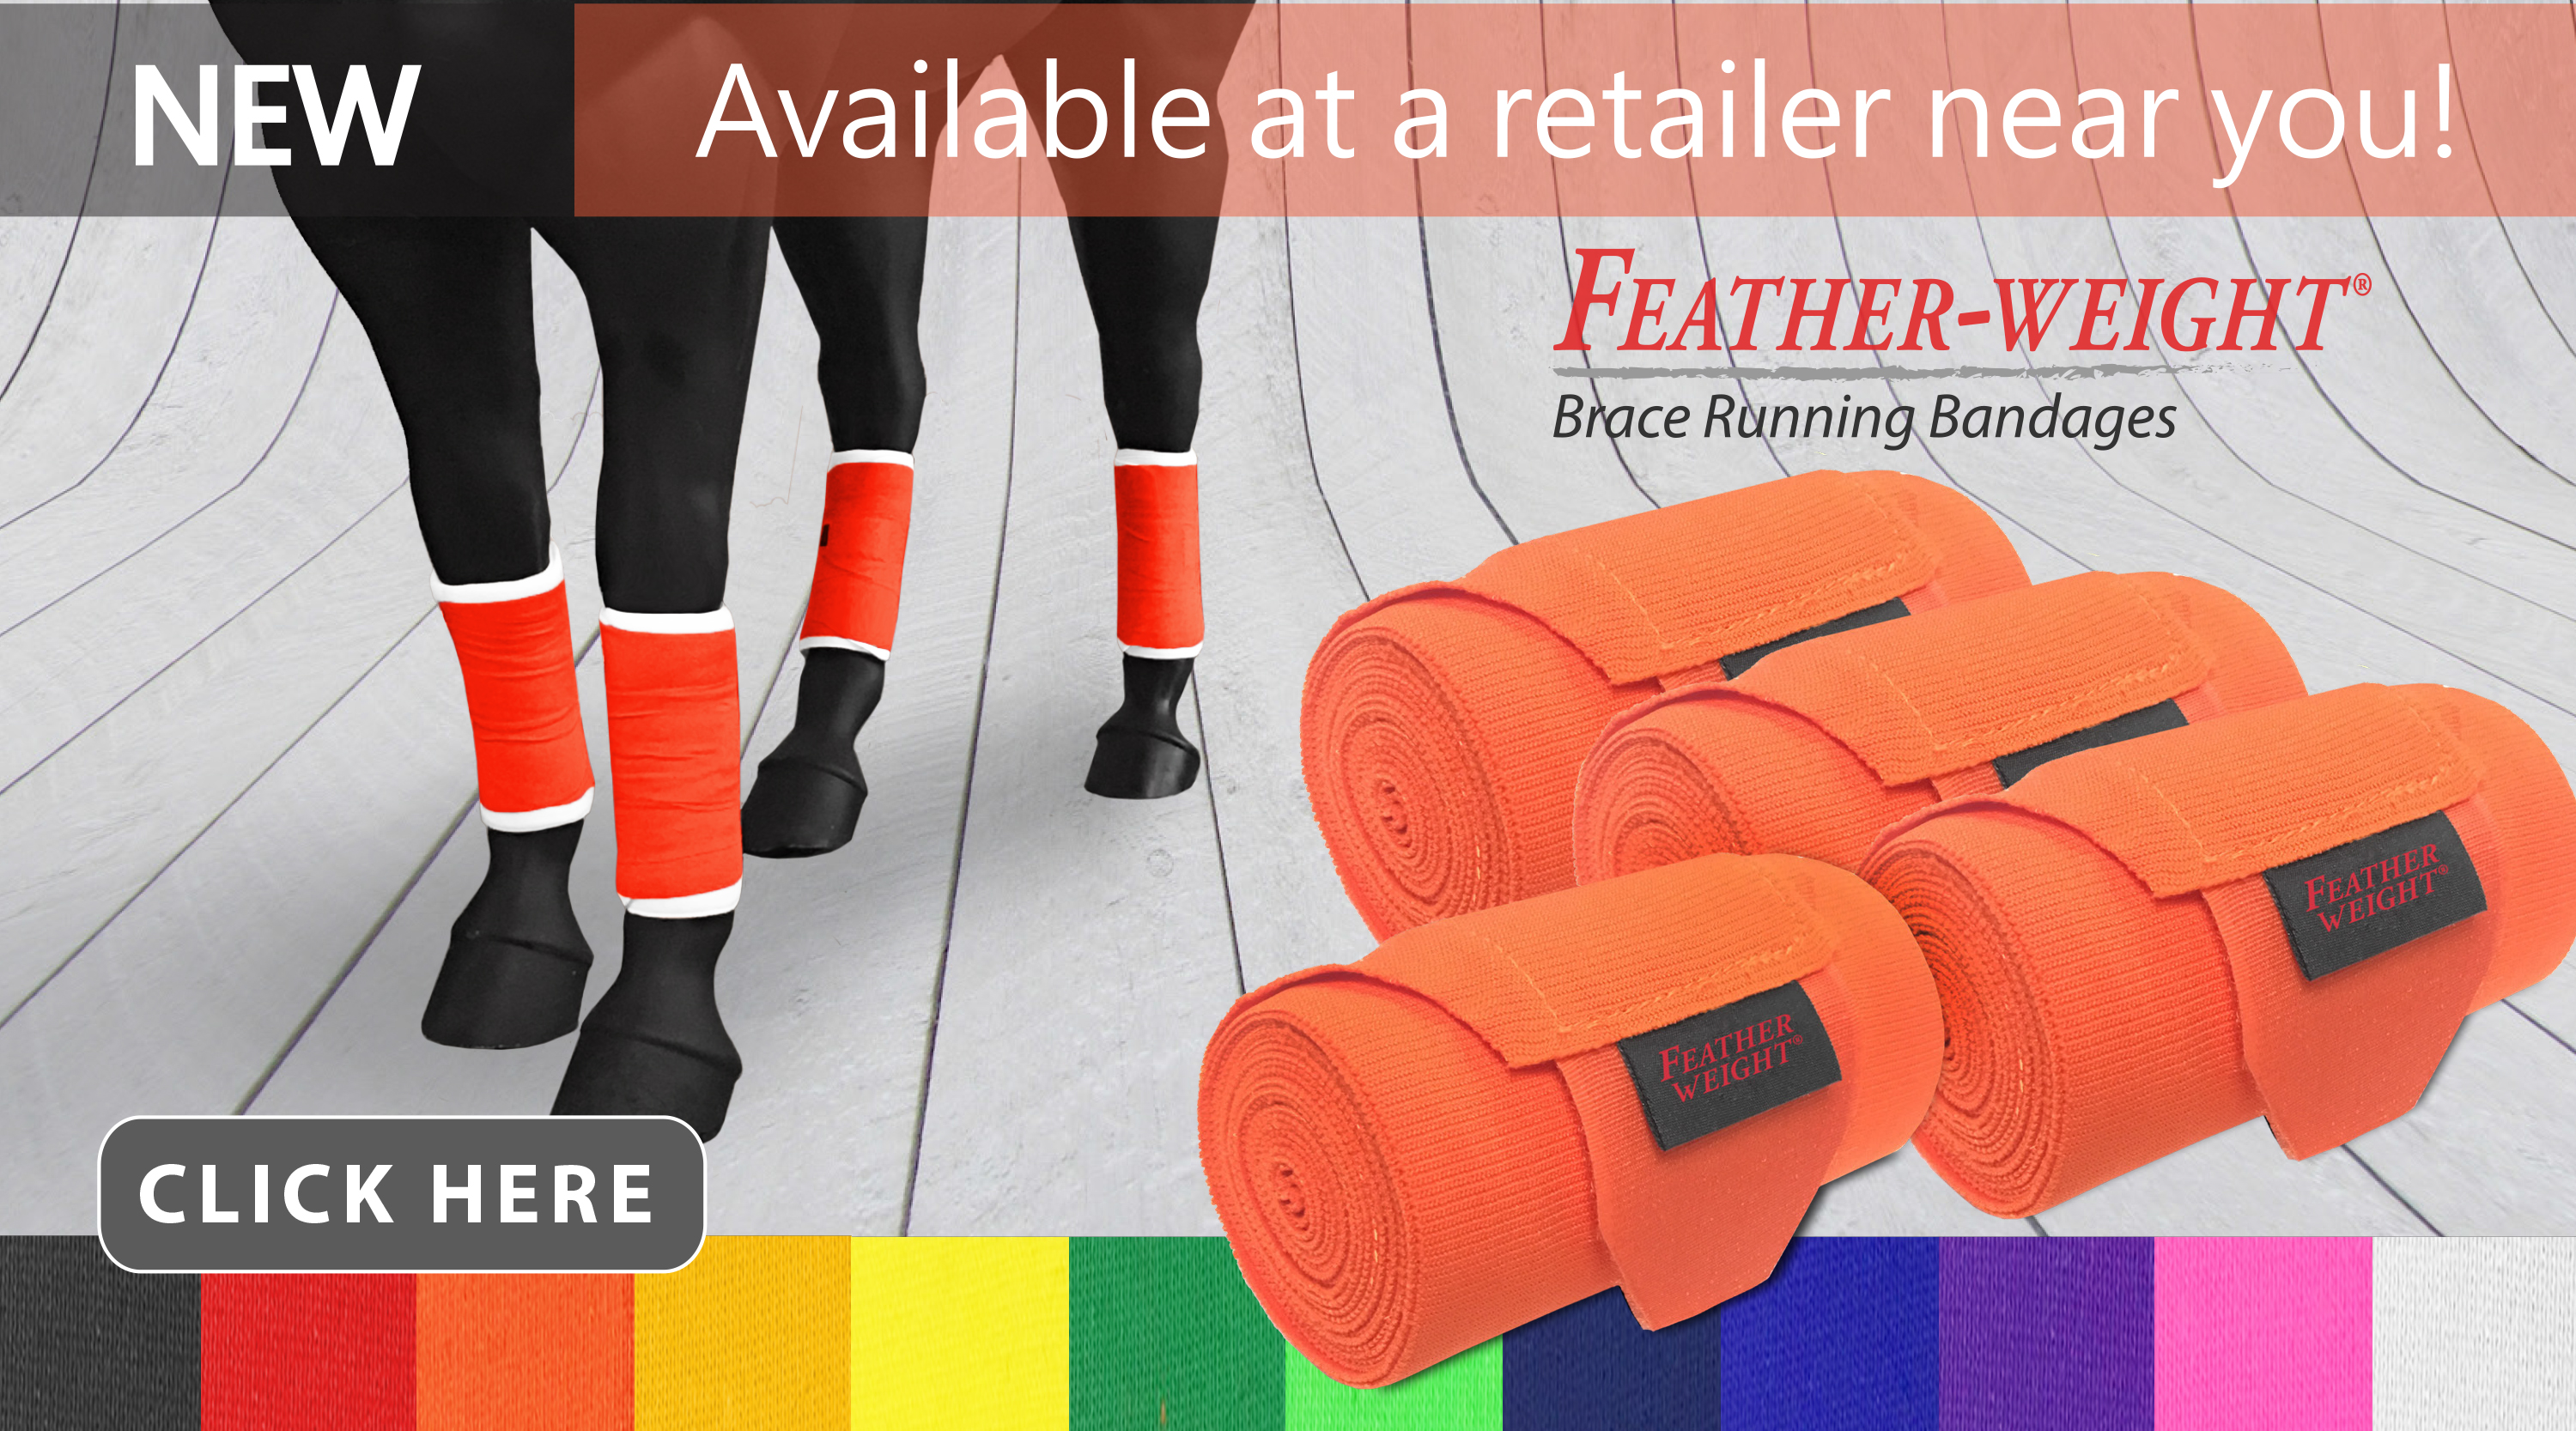 New at JACKS - Feather-Weight Brace Running Bandages